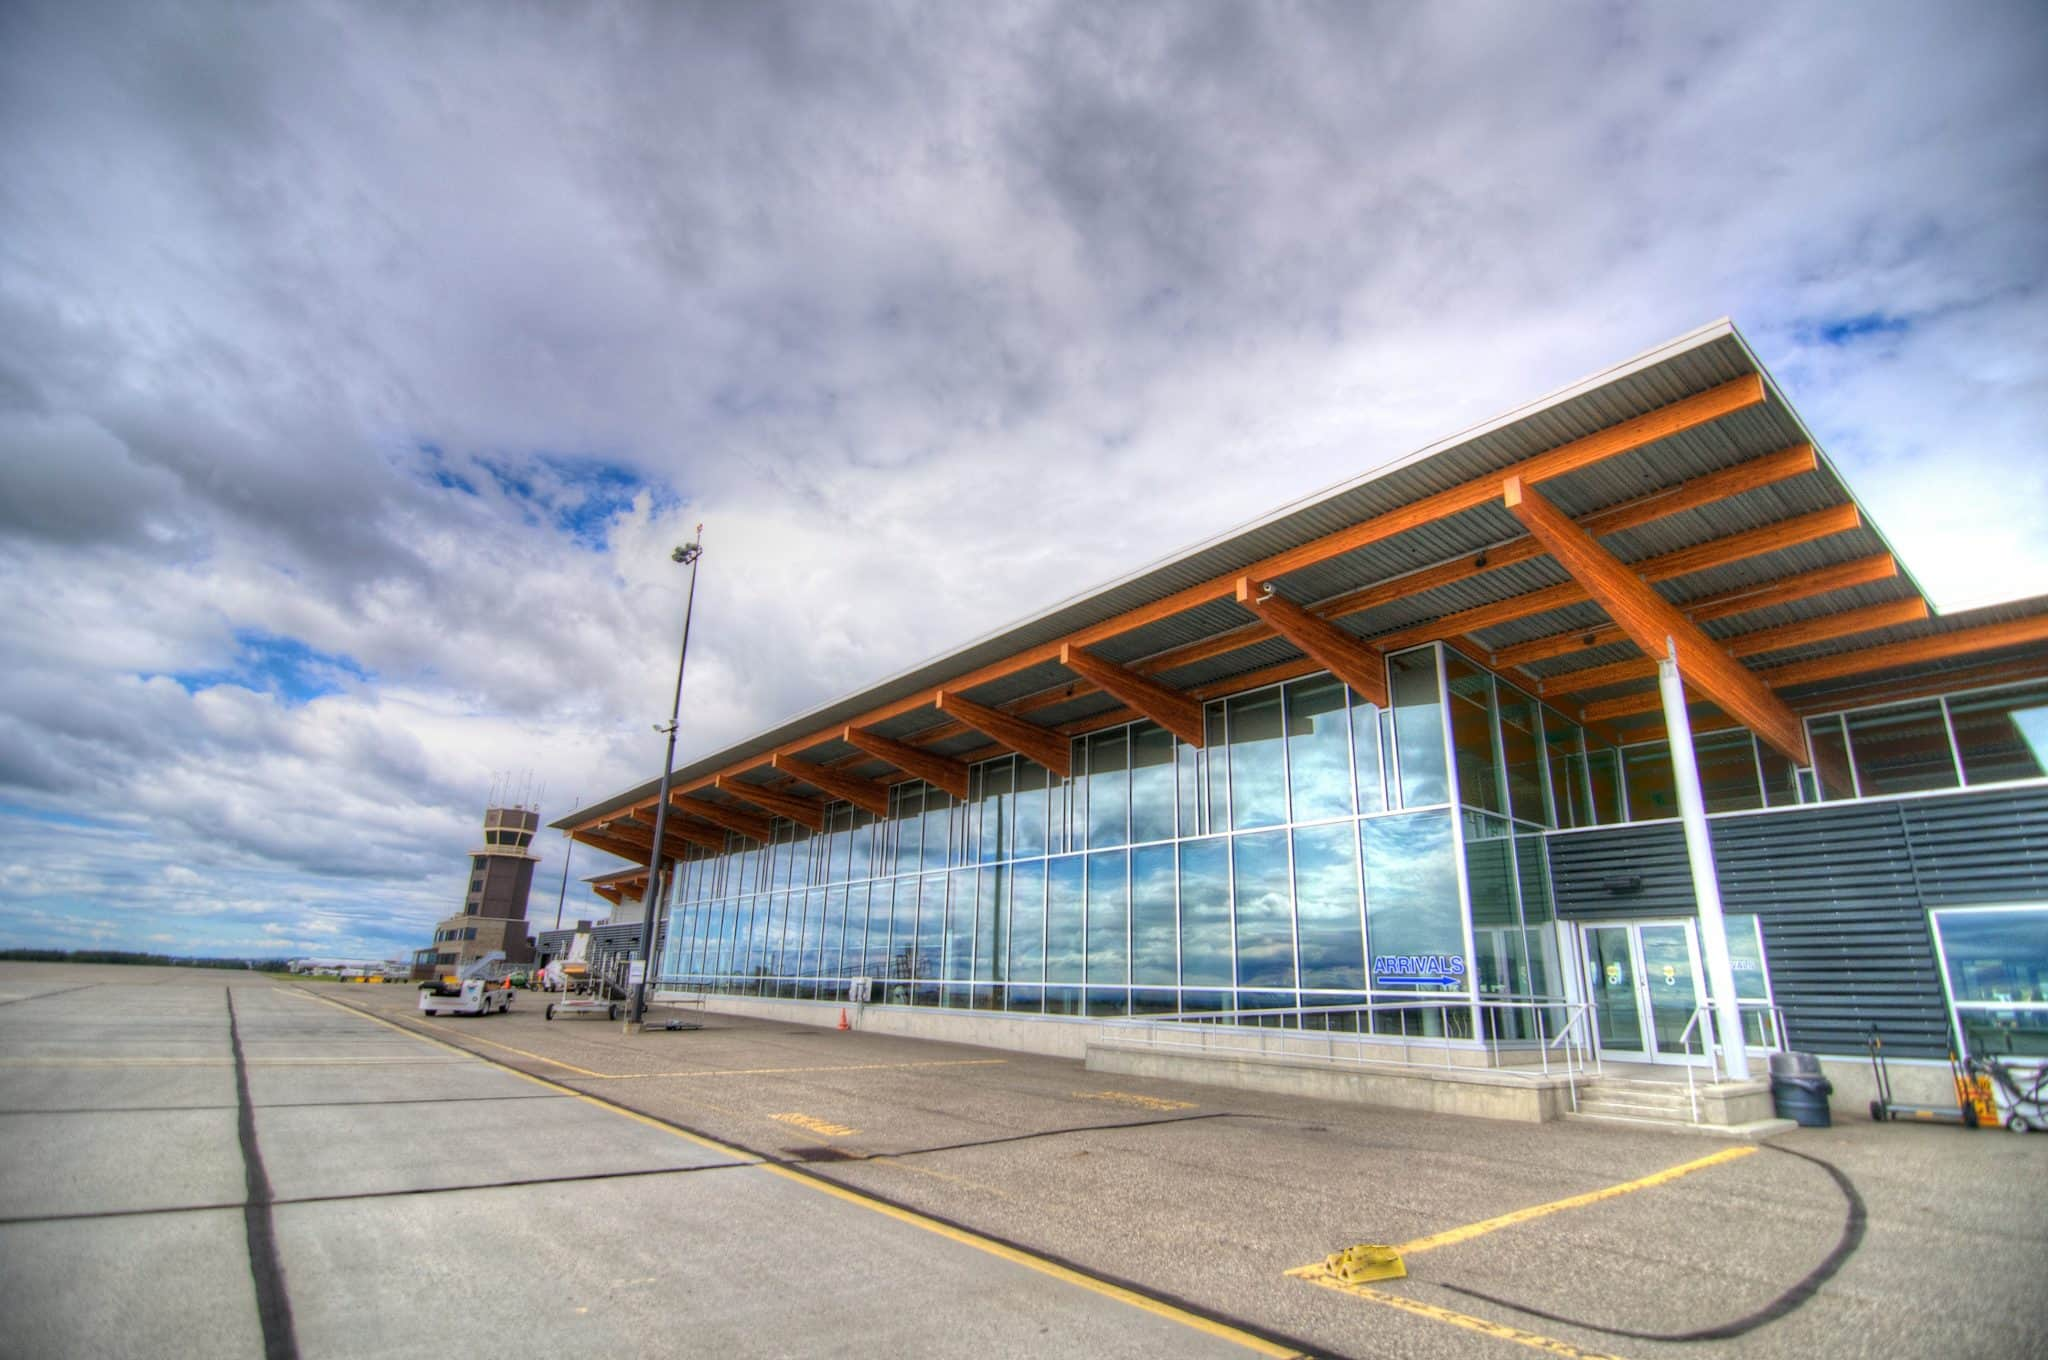 Blue apron growth -  Sustainably Designed Terminal And Substantially Upgraded To The Airport S Apron And Taxiway Infrastructure Passenger Growth Has Increased 22 Over The